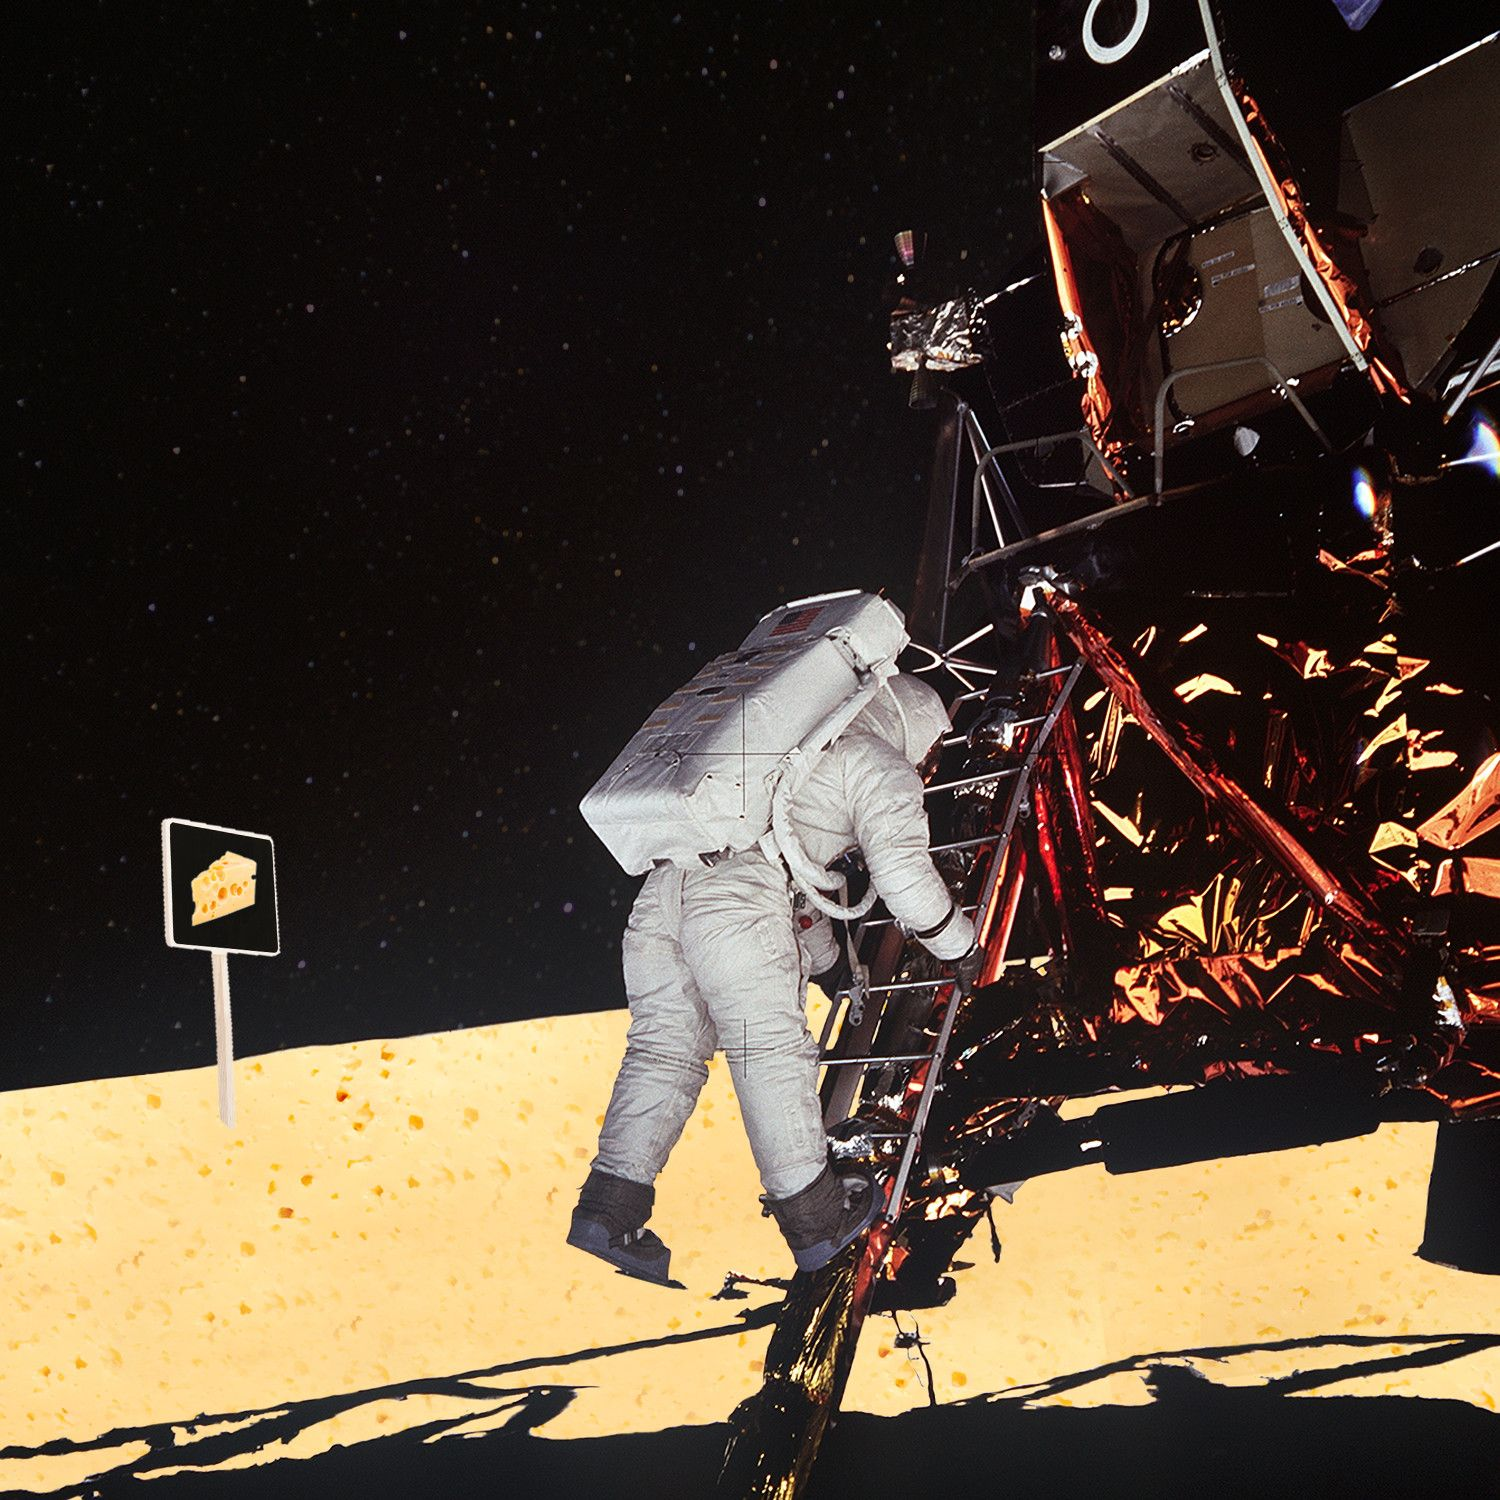 Moon Landing Conspiracy Theorists Raise These Questions. Here's Why They're Nonsense.